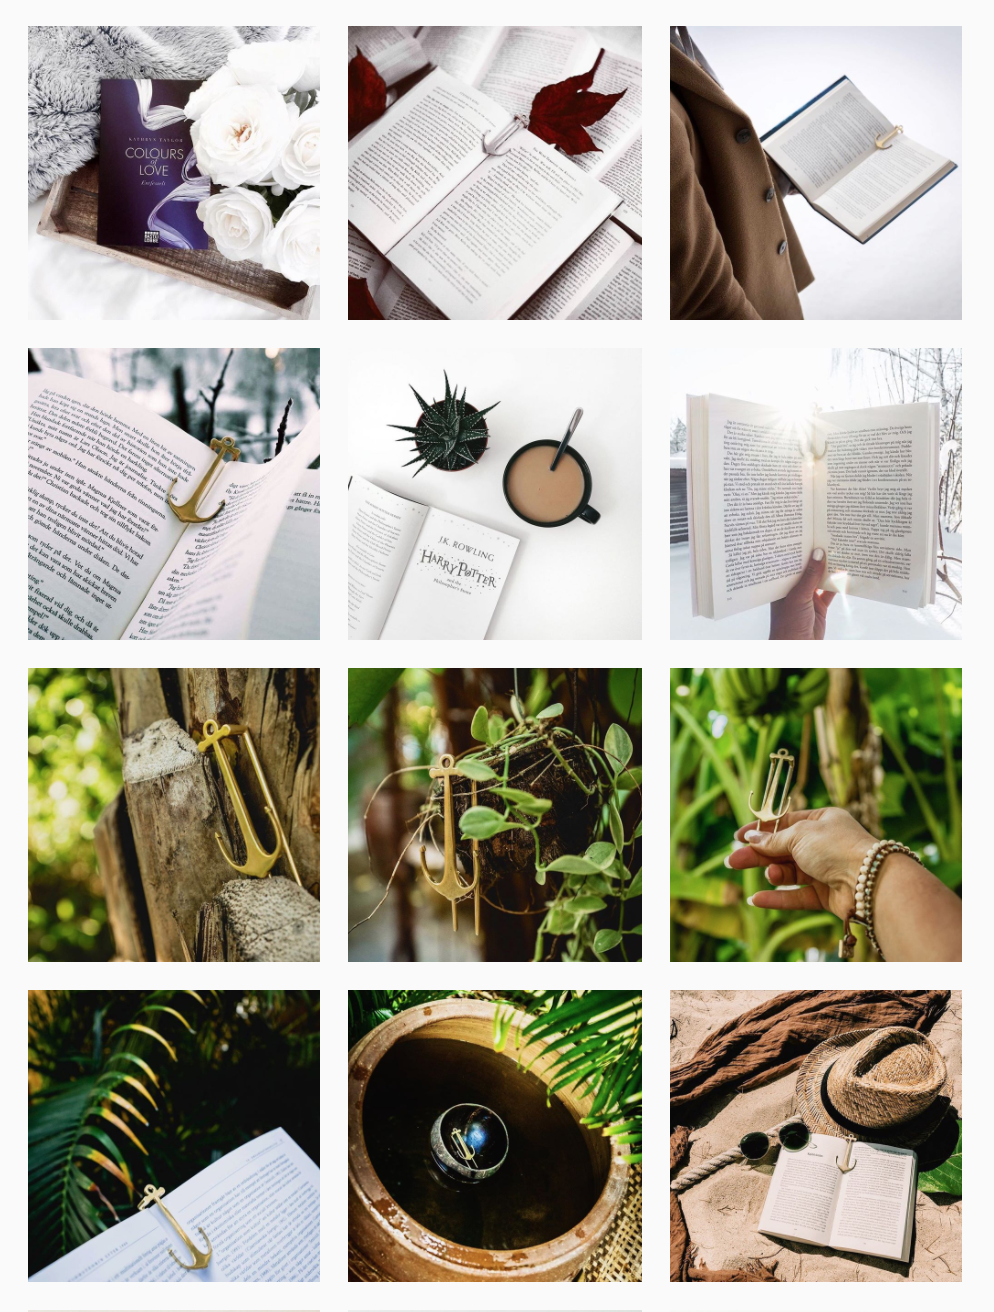 The Ultimate Bookstagram Guide: 12 Bookstagrammers' tips for success